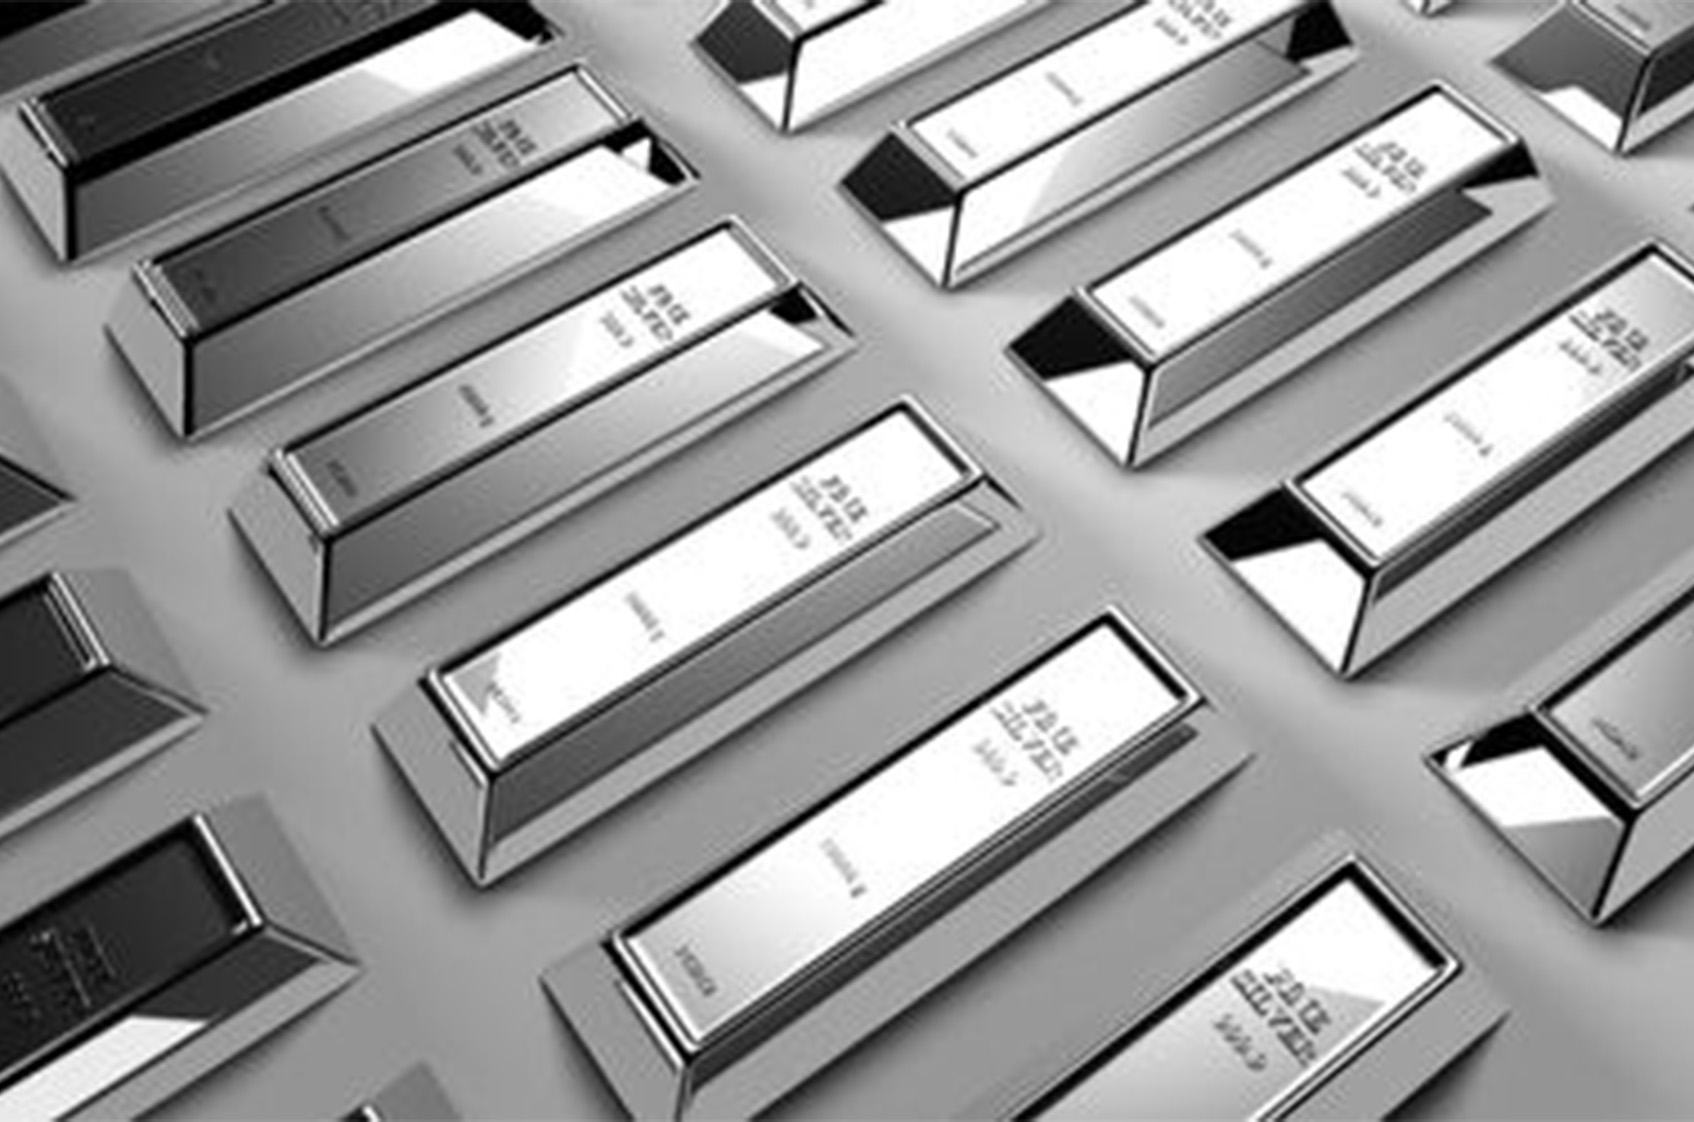 4 Platinum Group Metals Stocks Set To Shine Smallcappower